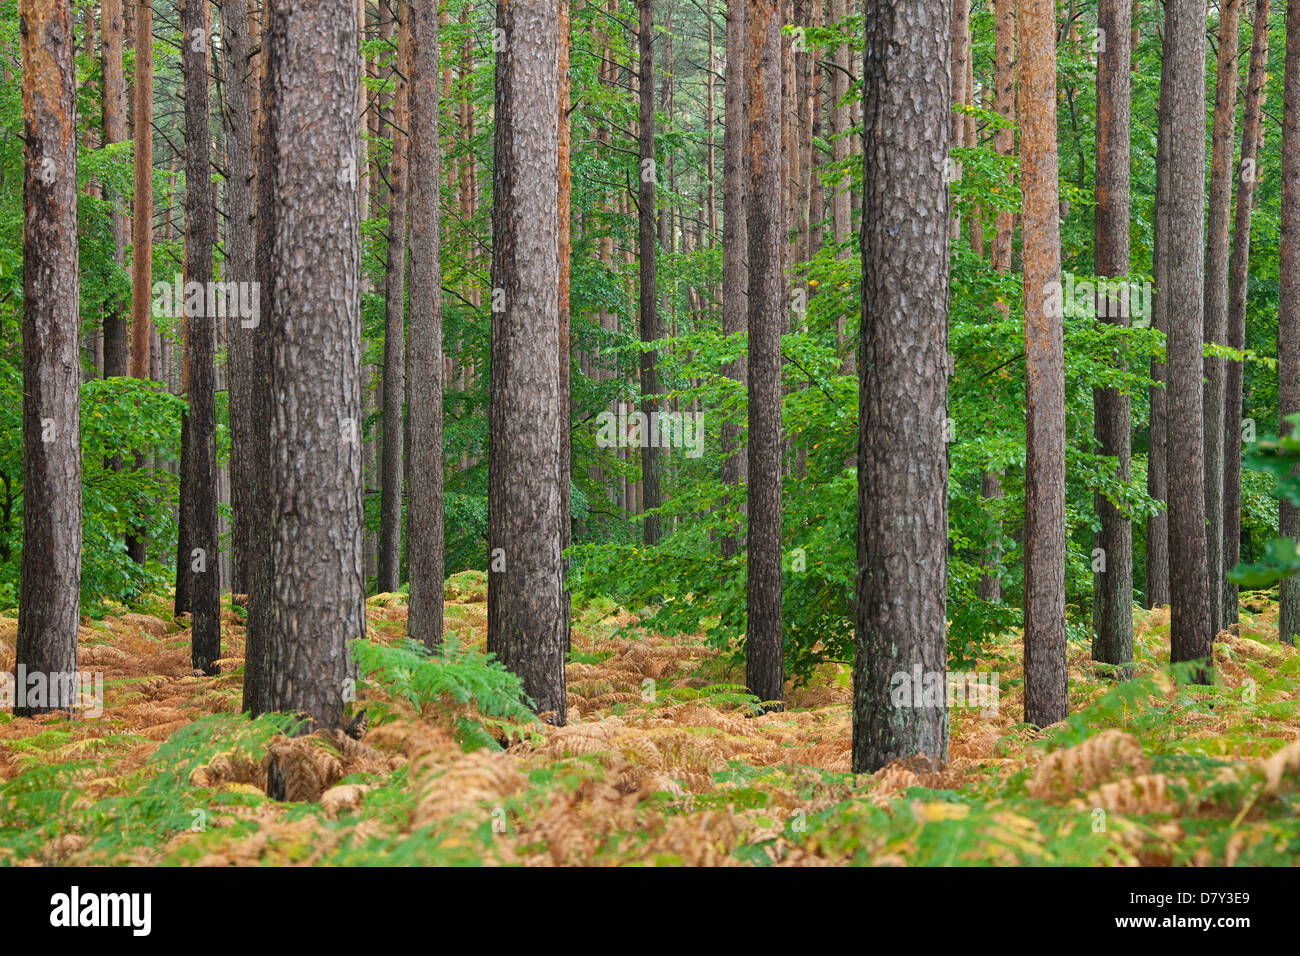 Scots Pine (Pinus sylvestris) and bracken in coniferous forest in autumn - Stock Image